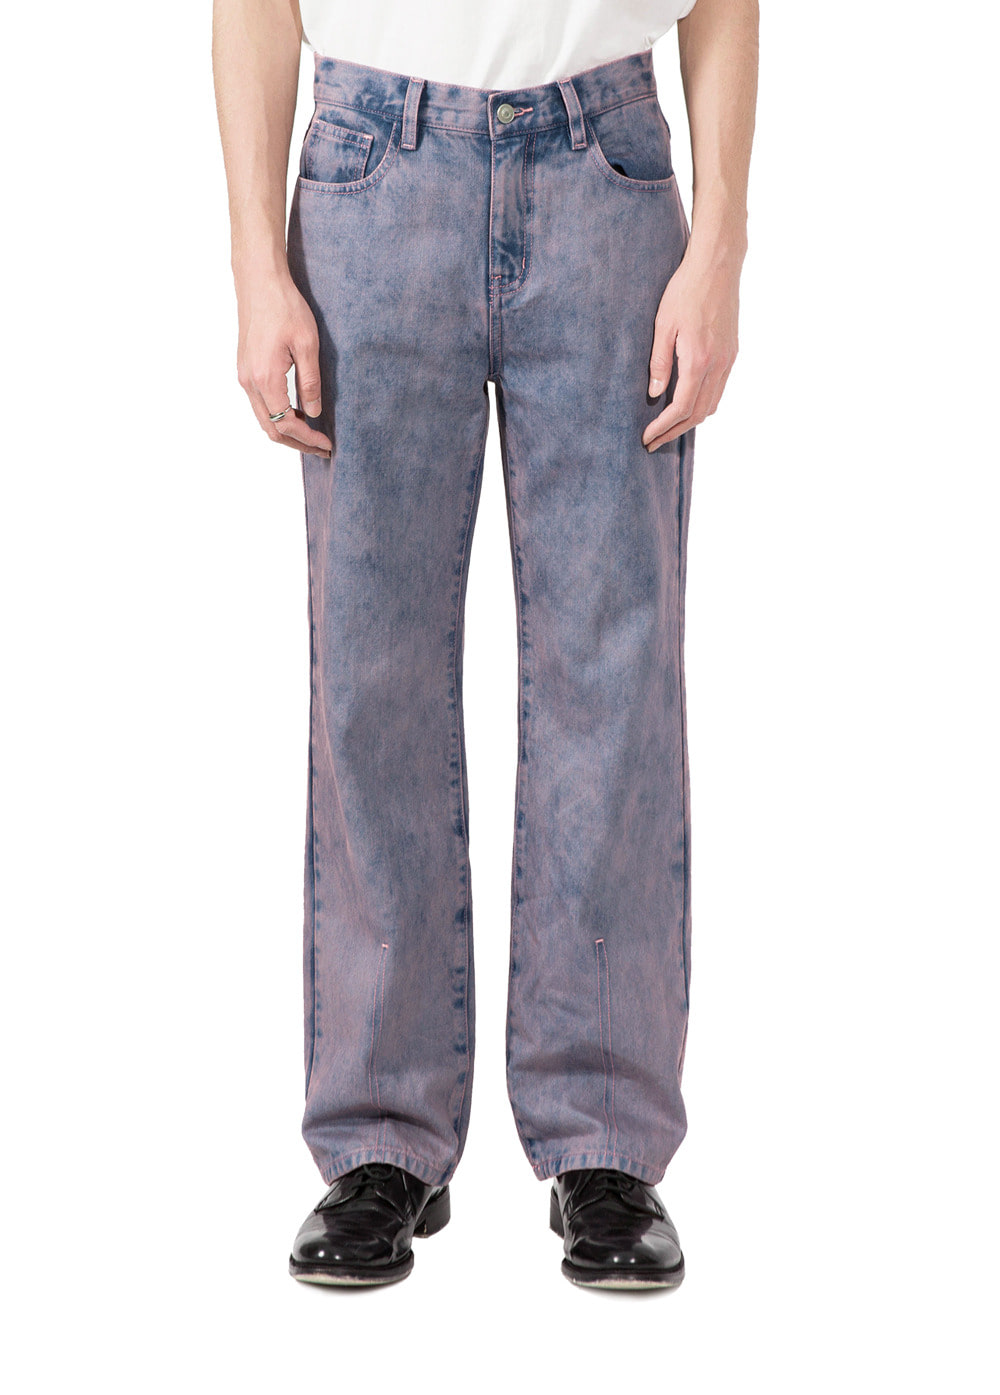 TWO TONE STRAIGHT DENIM PANTS pink